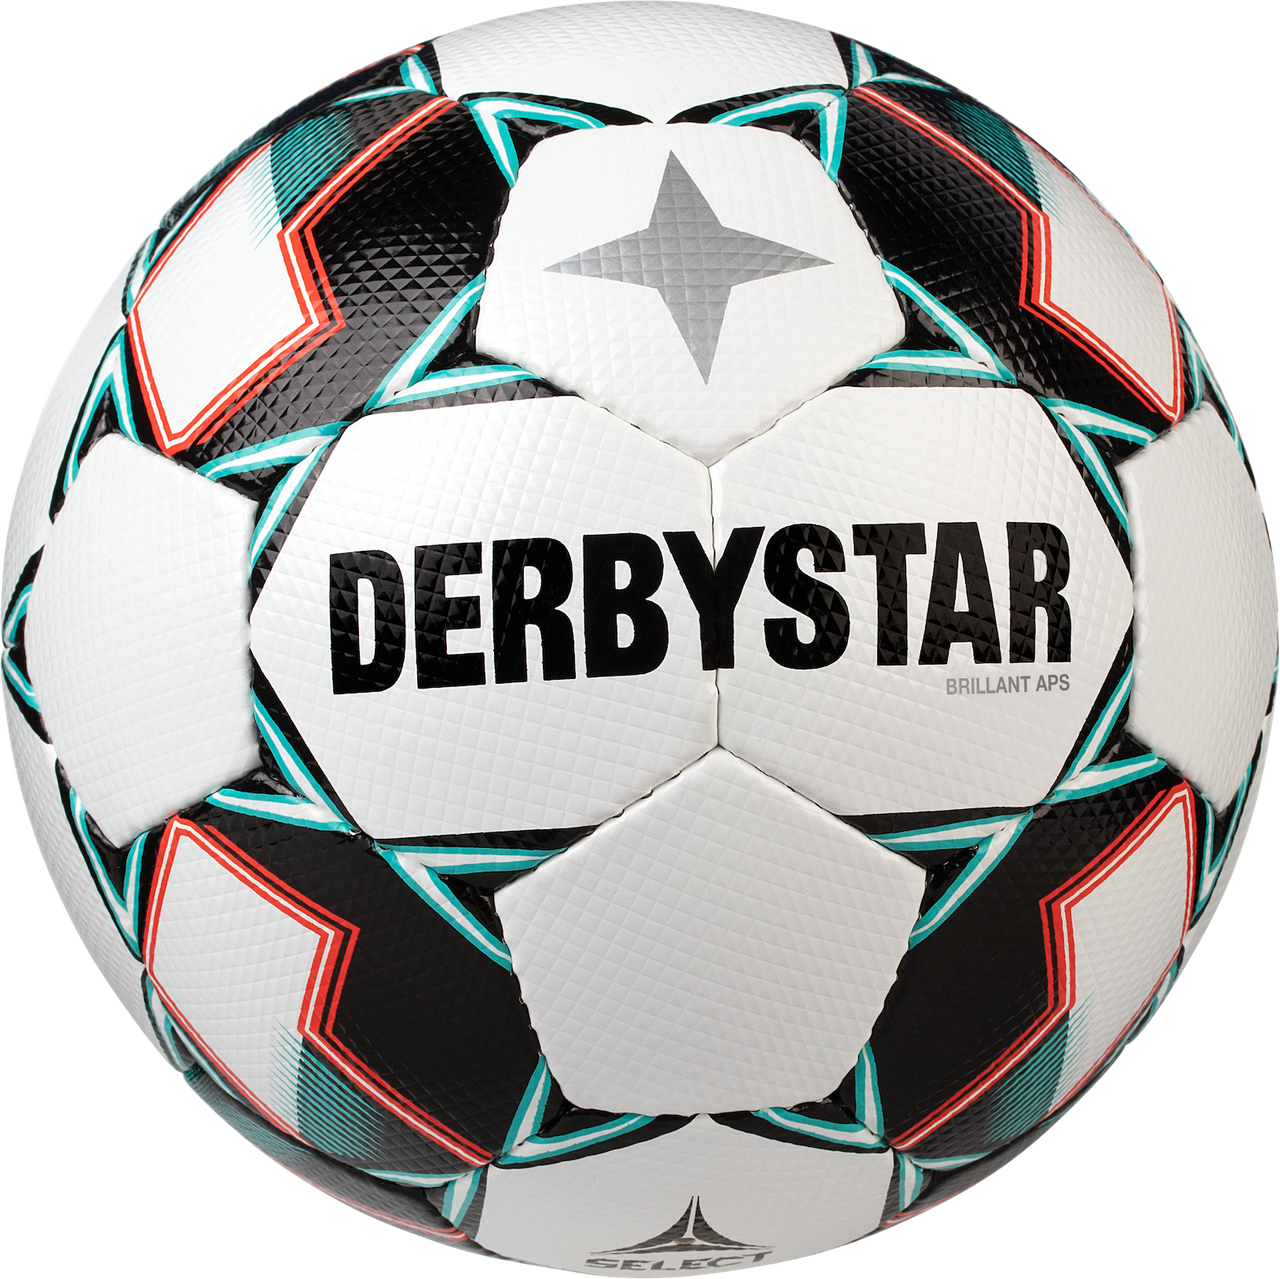 DERBYSTAR Spielball - BRILLANT APS